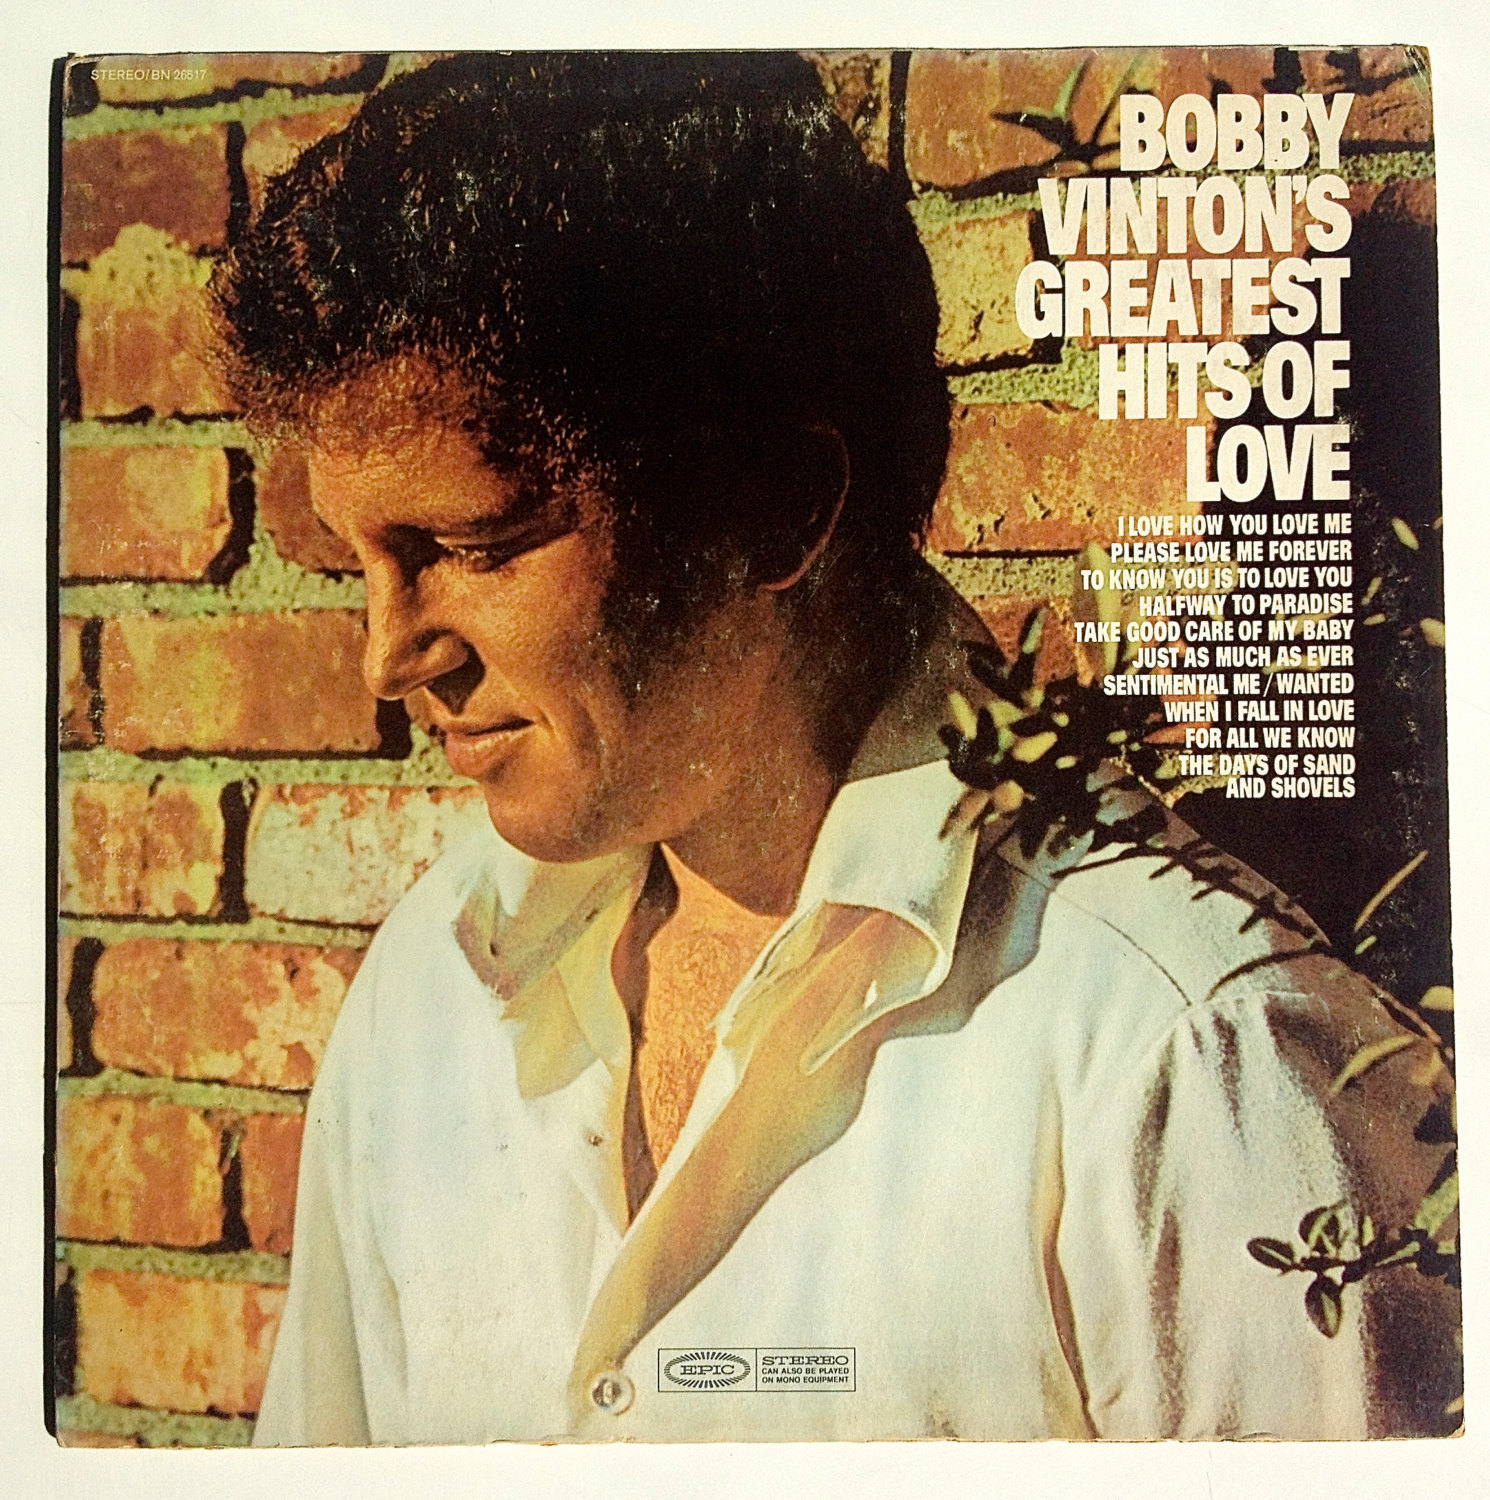 Bobby Vinton - Bobby Vinton's Greatest Hits of Love LP Vinyl Record Album, Epic,